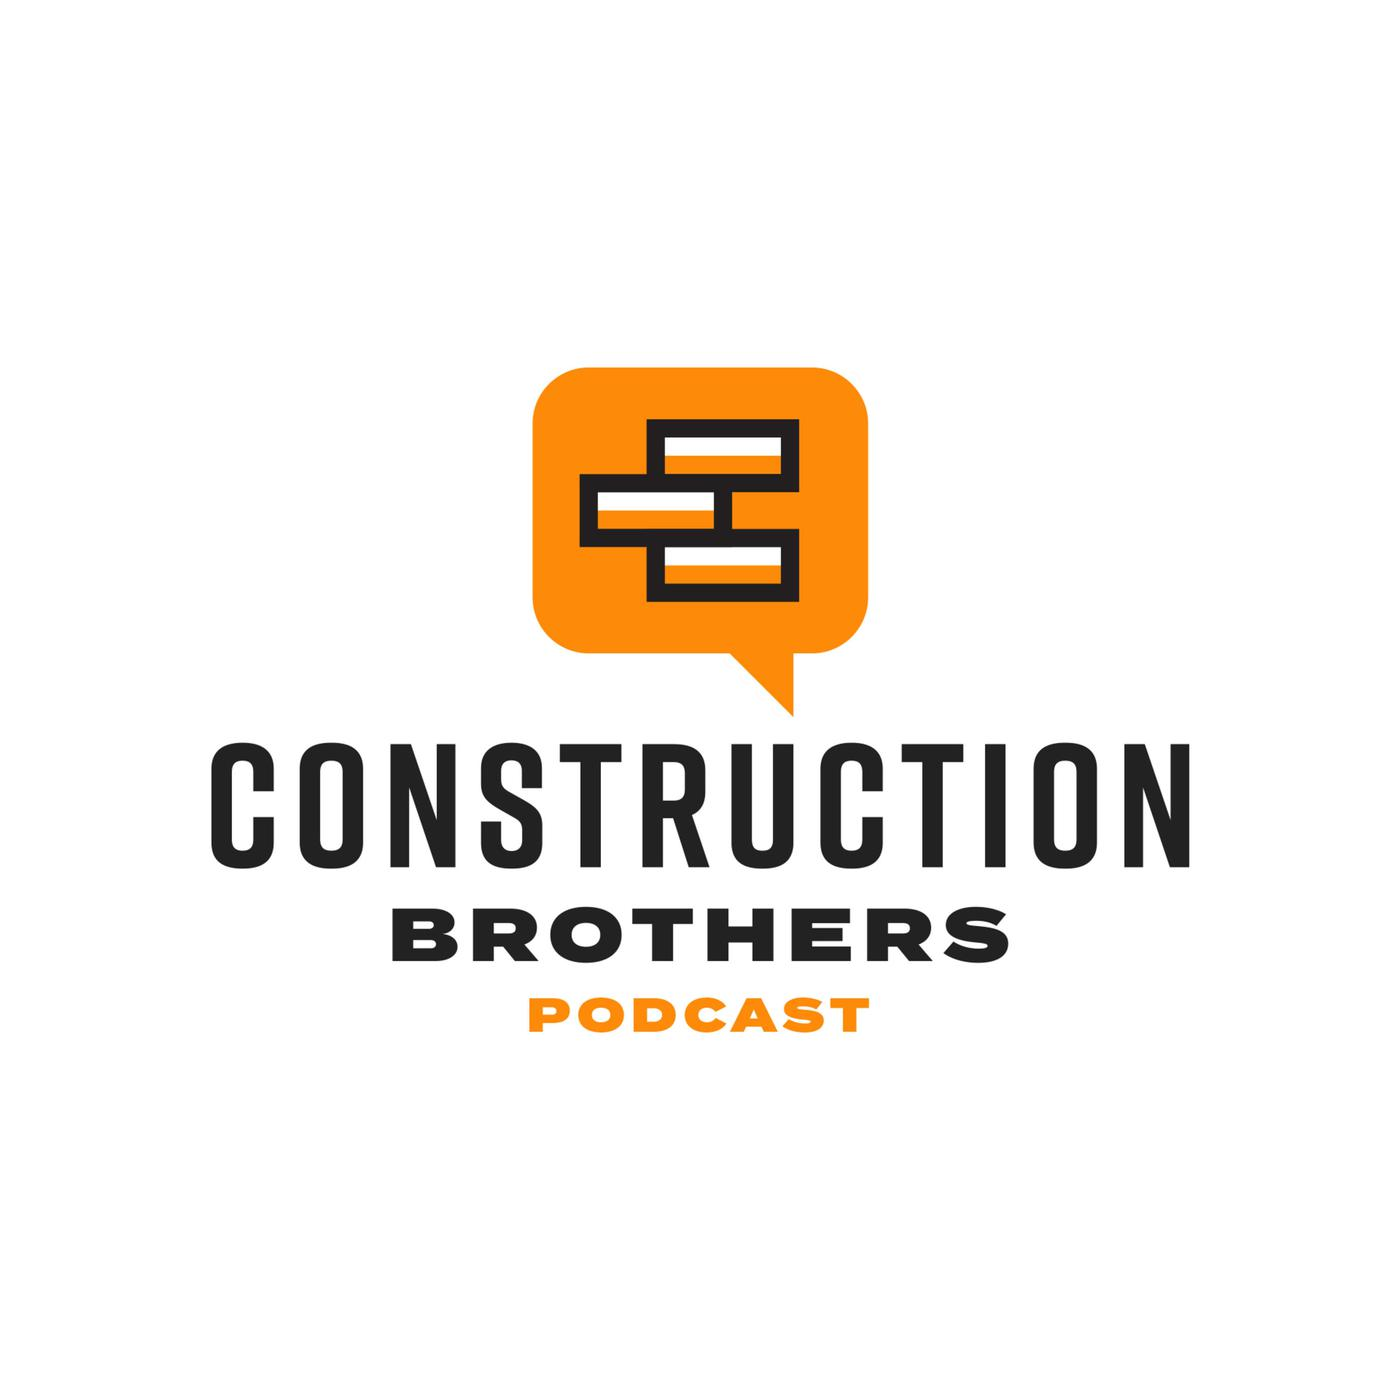 Cosnstruction Brothers podcast cover